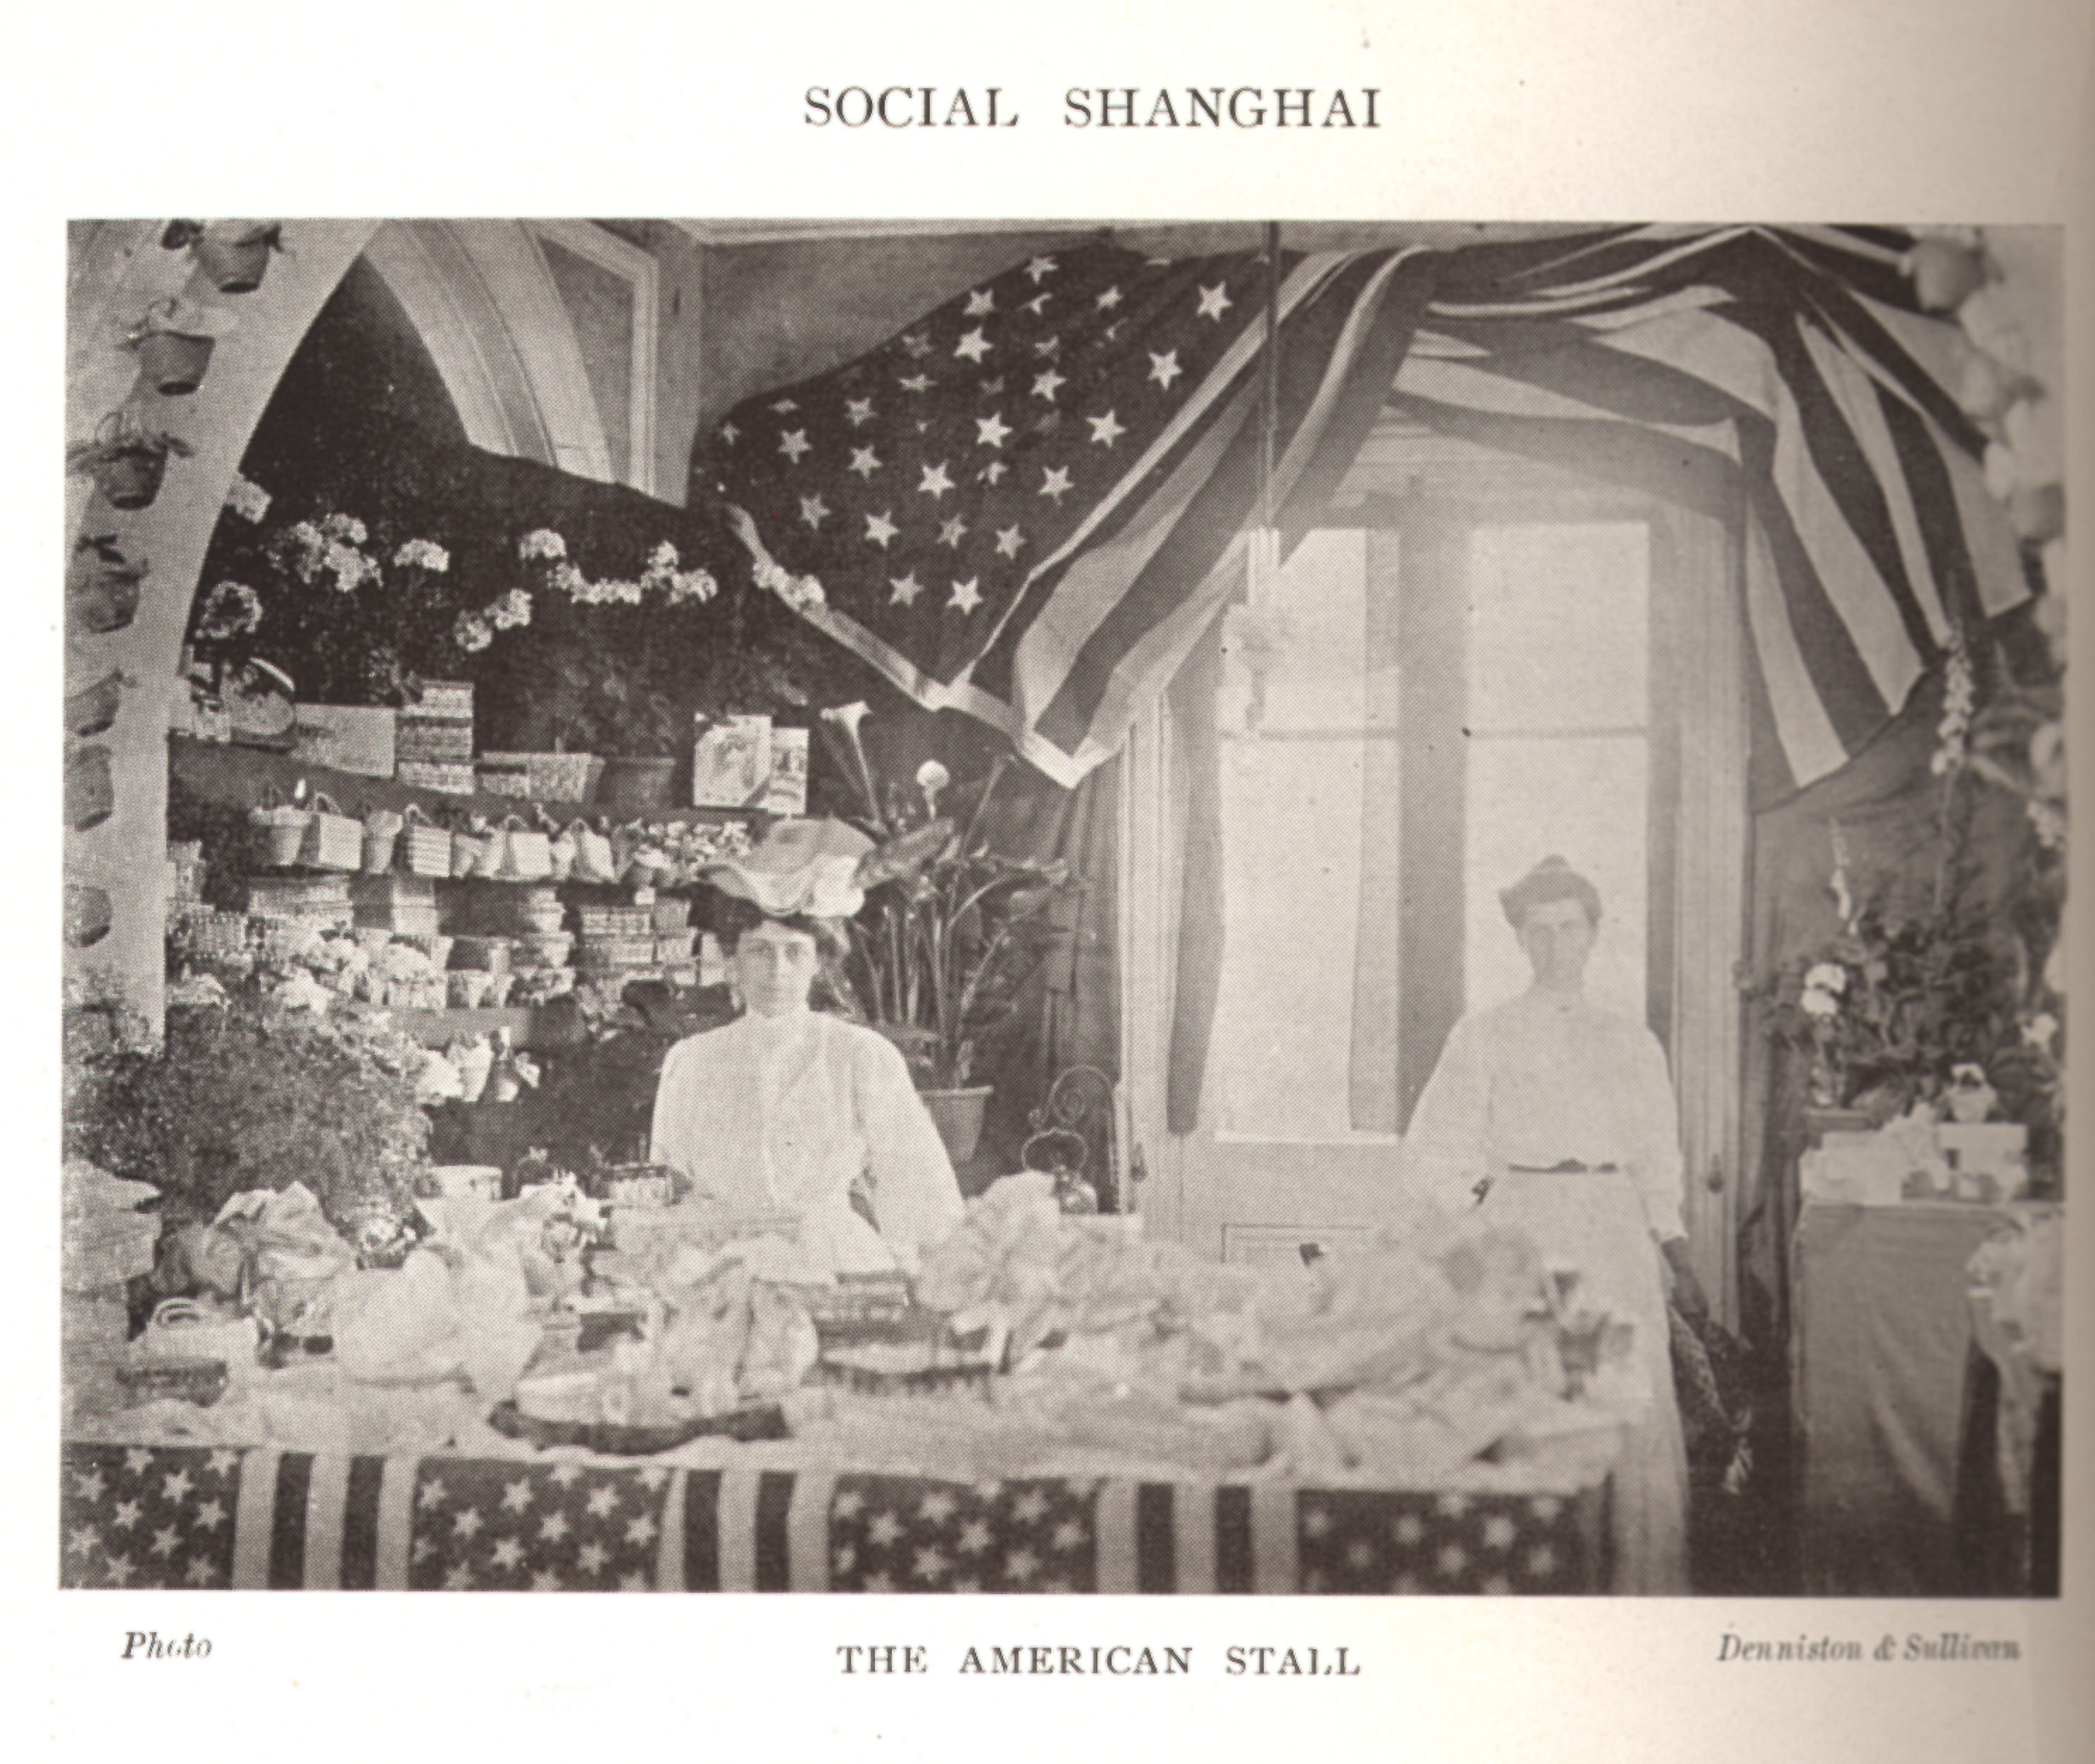 Gertrude in the American stall at a Shanghai fete, 1907